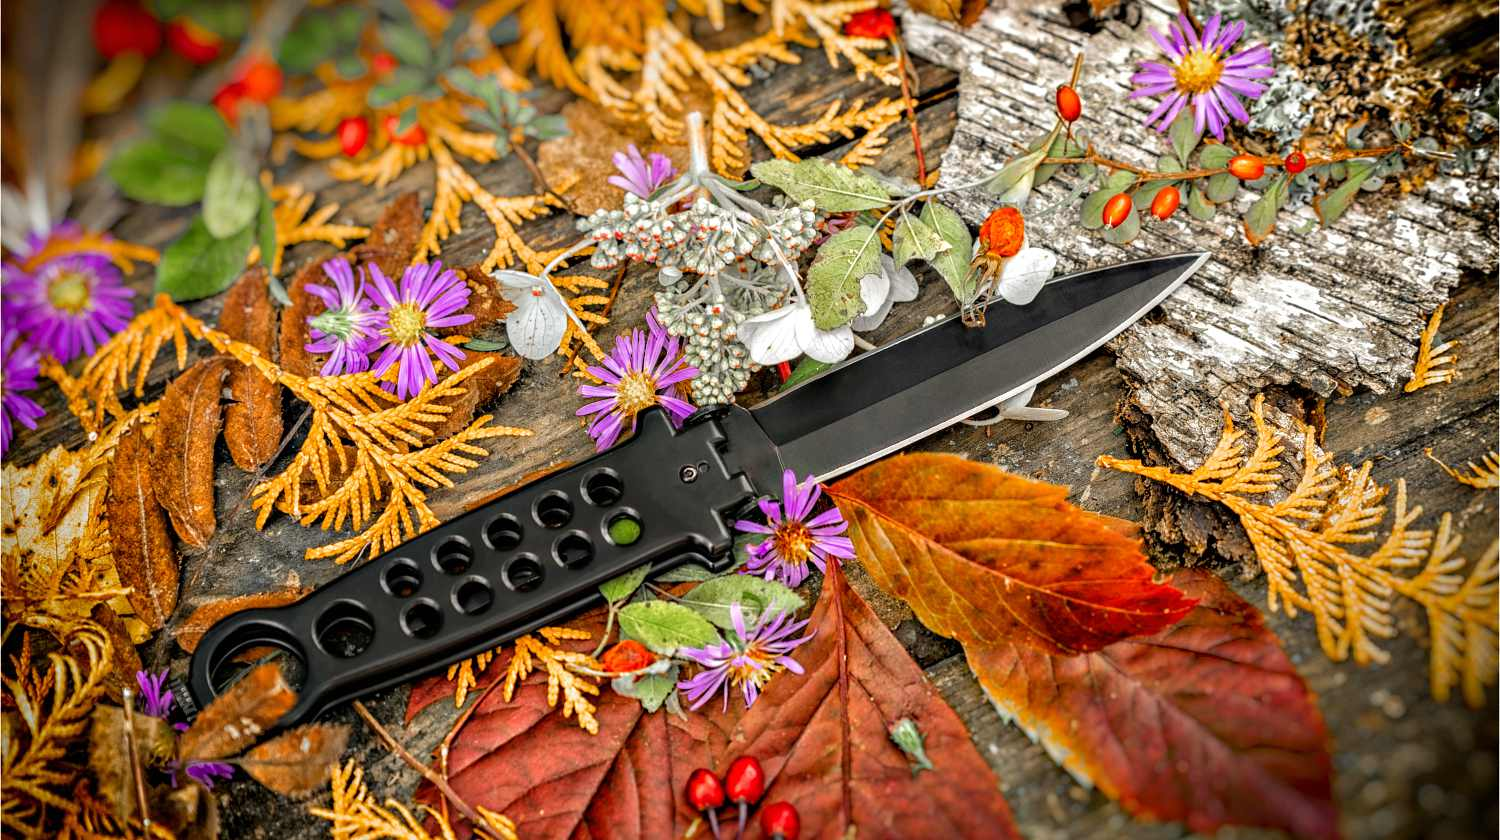 Black butterfly knives | Everything You'll Ever Need To Know About Butterfly Knives | Featured